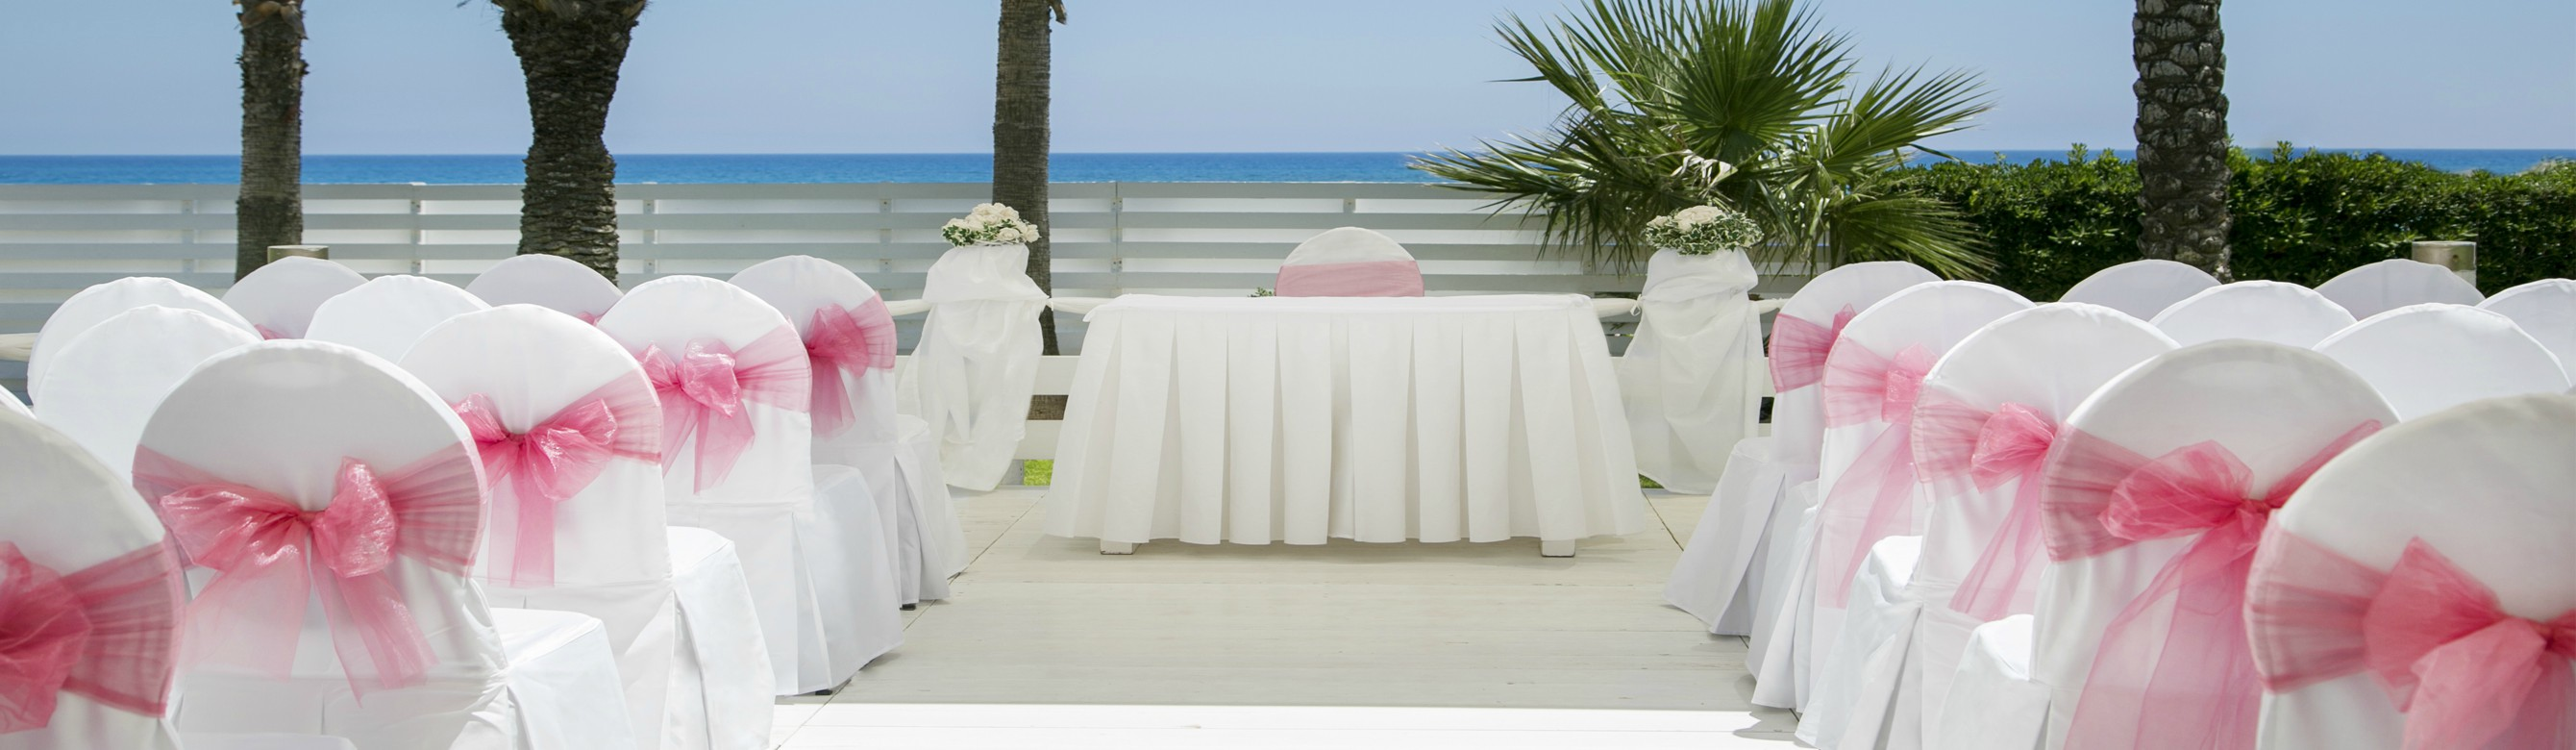 Book your wedding day in Asterias Beach Hotel Ayia Napa